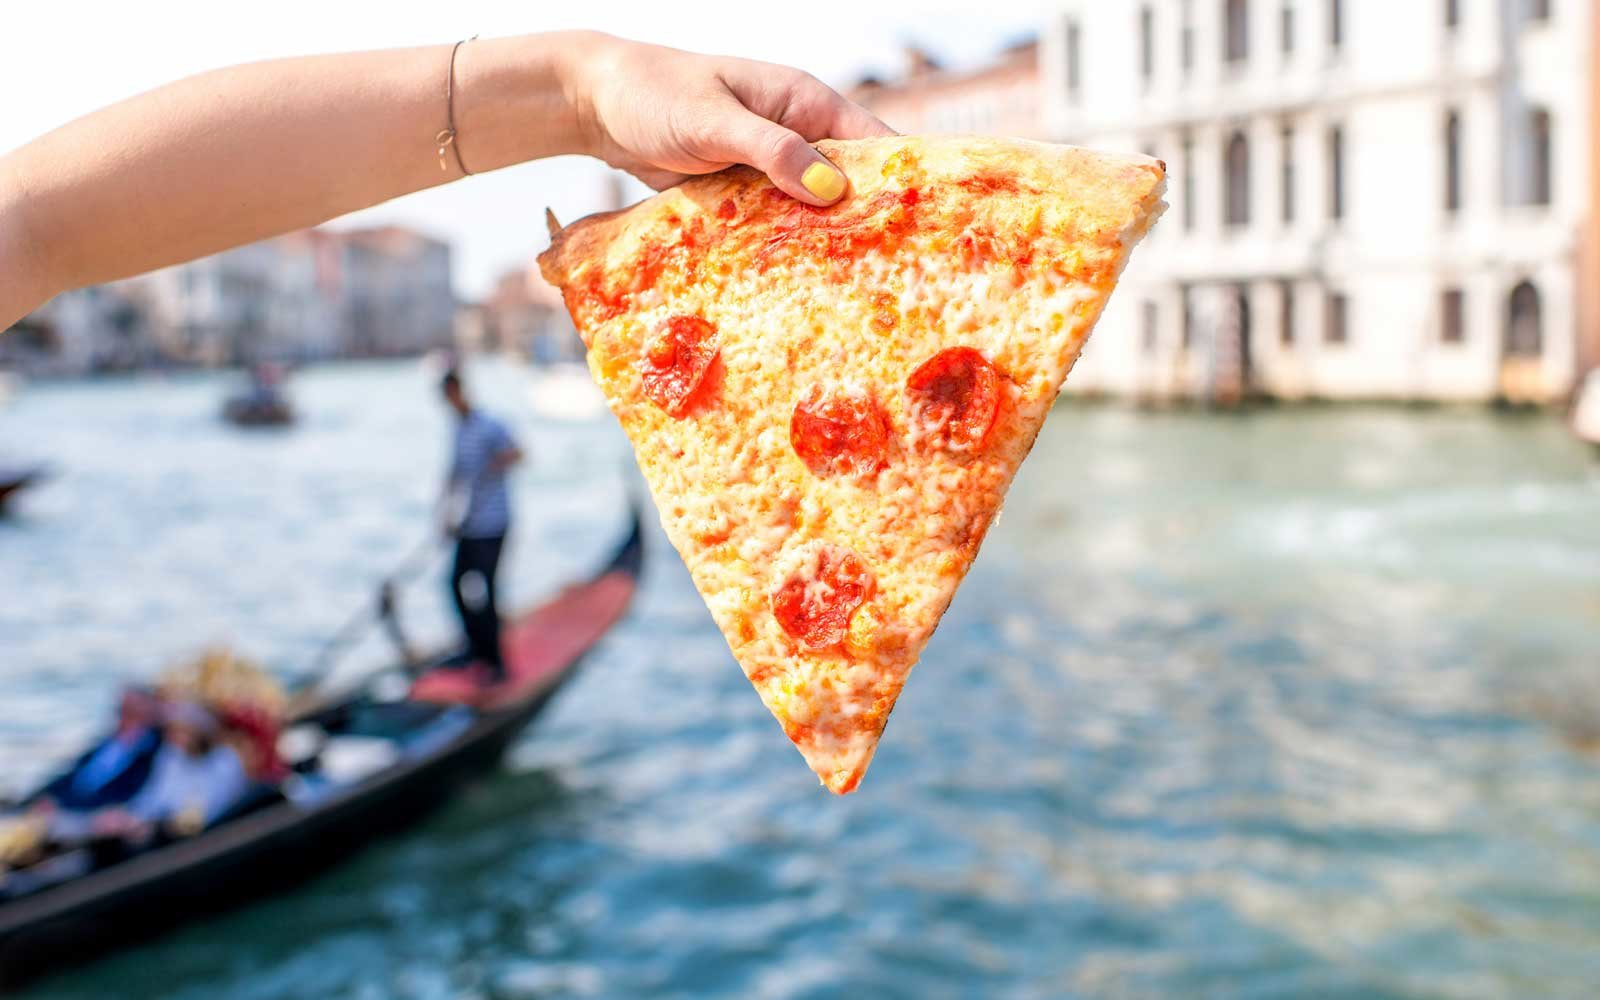 pizza venice italy lot slice eating italian drink traditional water shops canal harder istockphoto getty styles travel